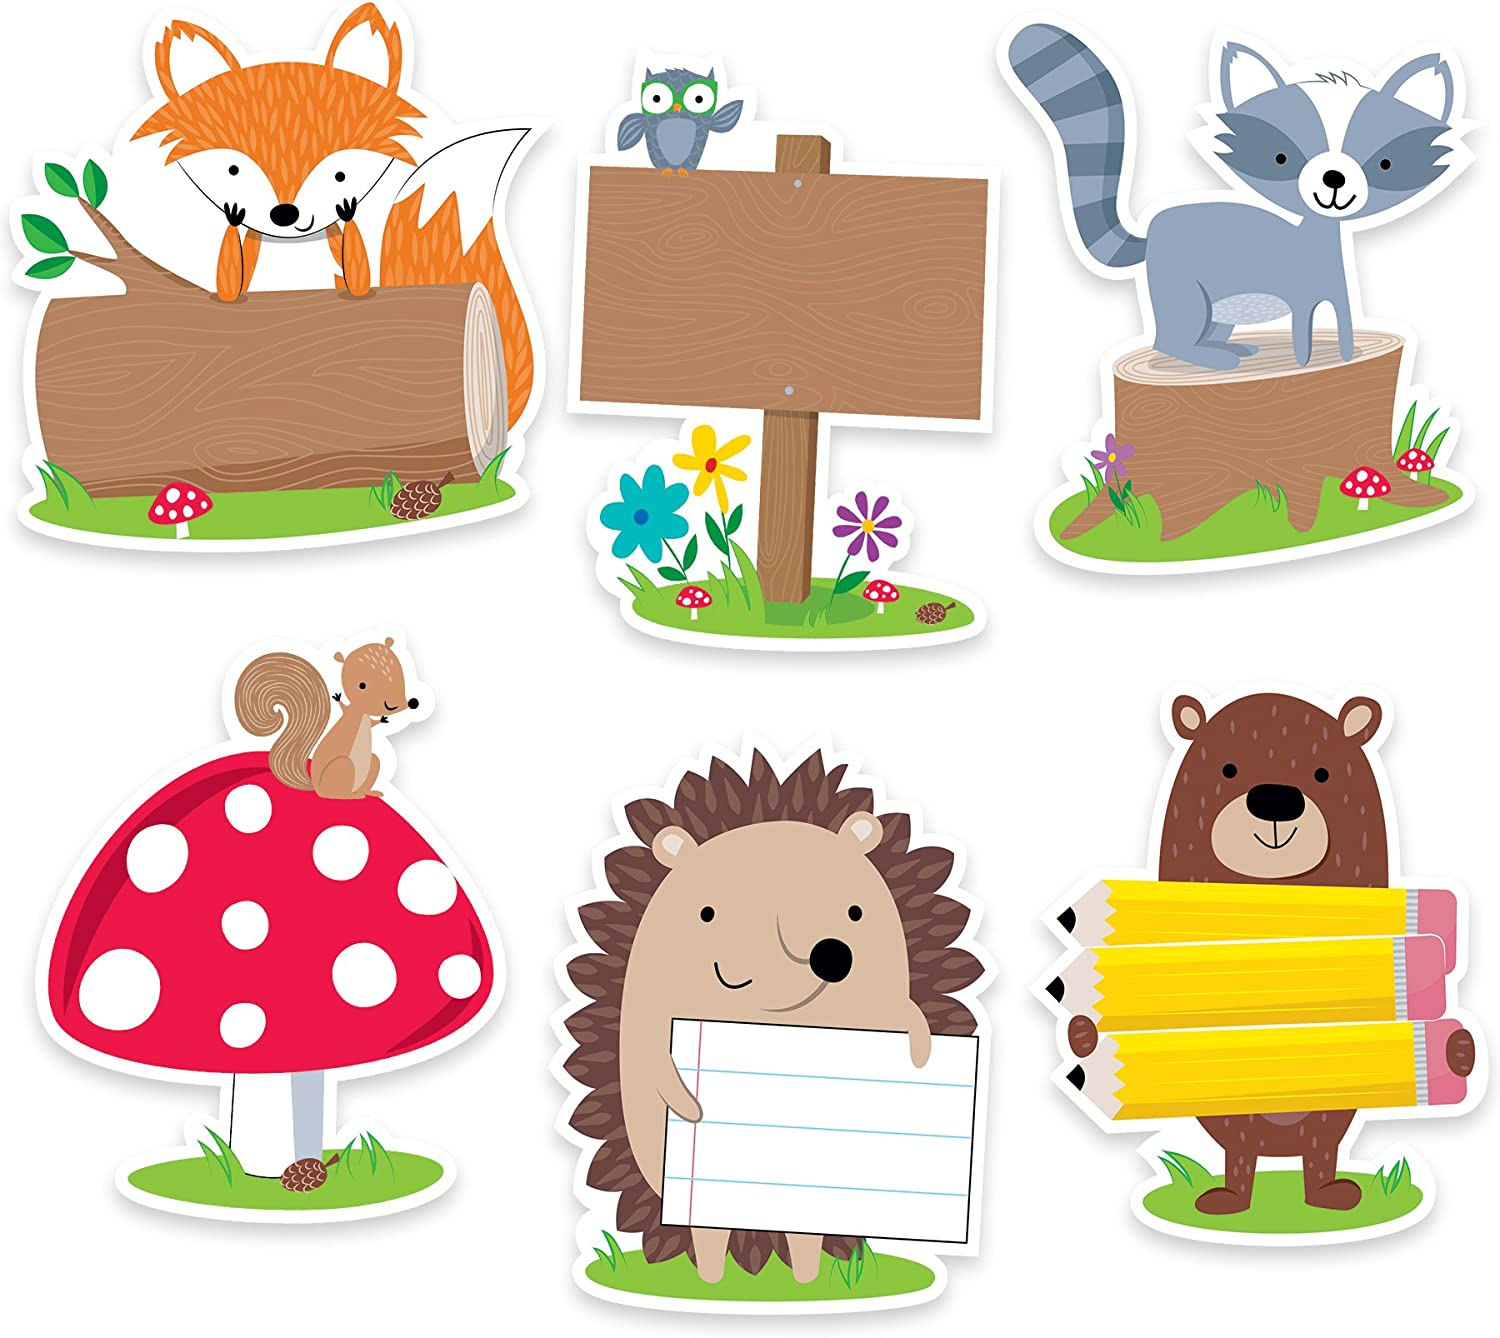 "Creative Teaching Press Incentives, Wall Décor Woodland Friends Cut Outs, 6"" (Accent for Calendars, Bulletin Boards and Classrooms, Learning Spaces and More) (6099)"